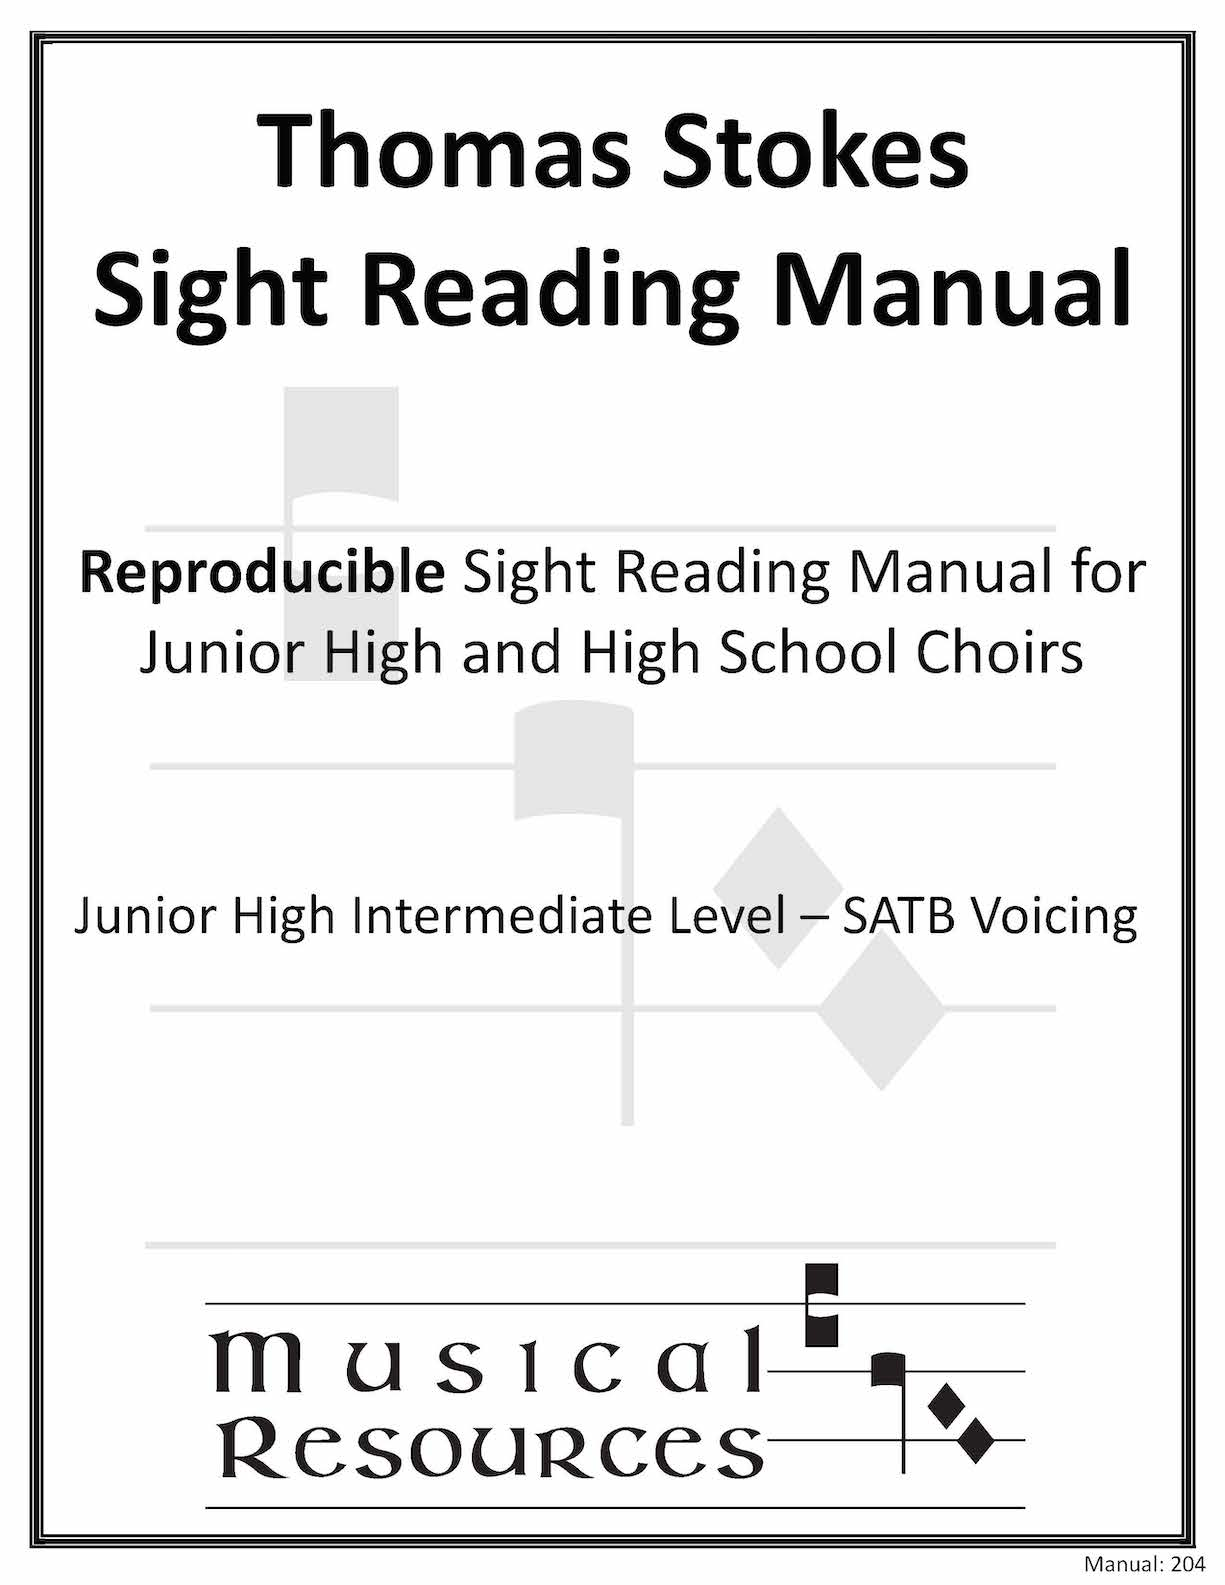 Picture of (Digital) Thomas Stokes Sightreading Manual #204 - SATB Junior High Intermediate